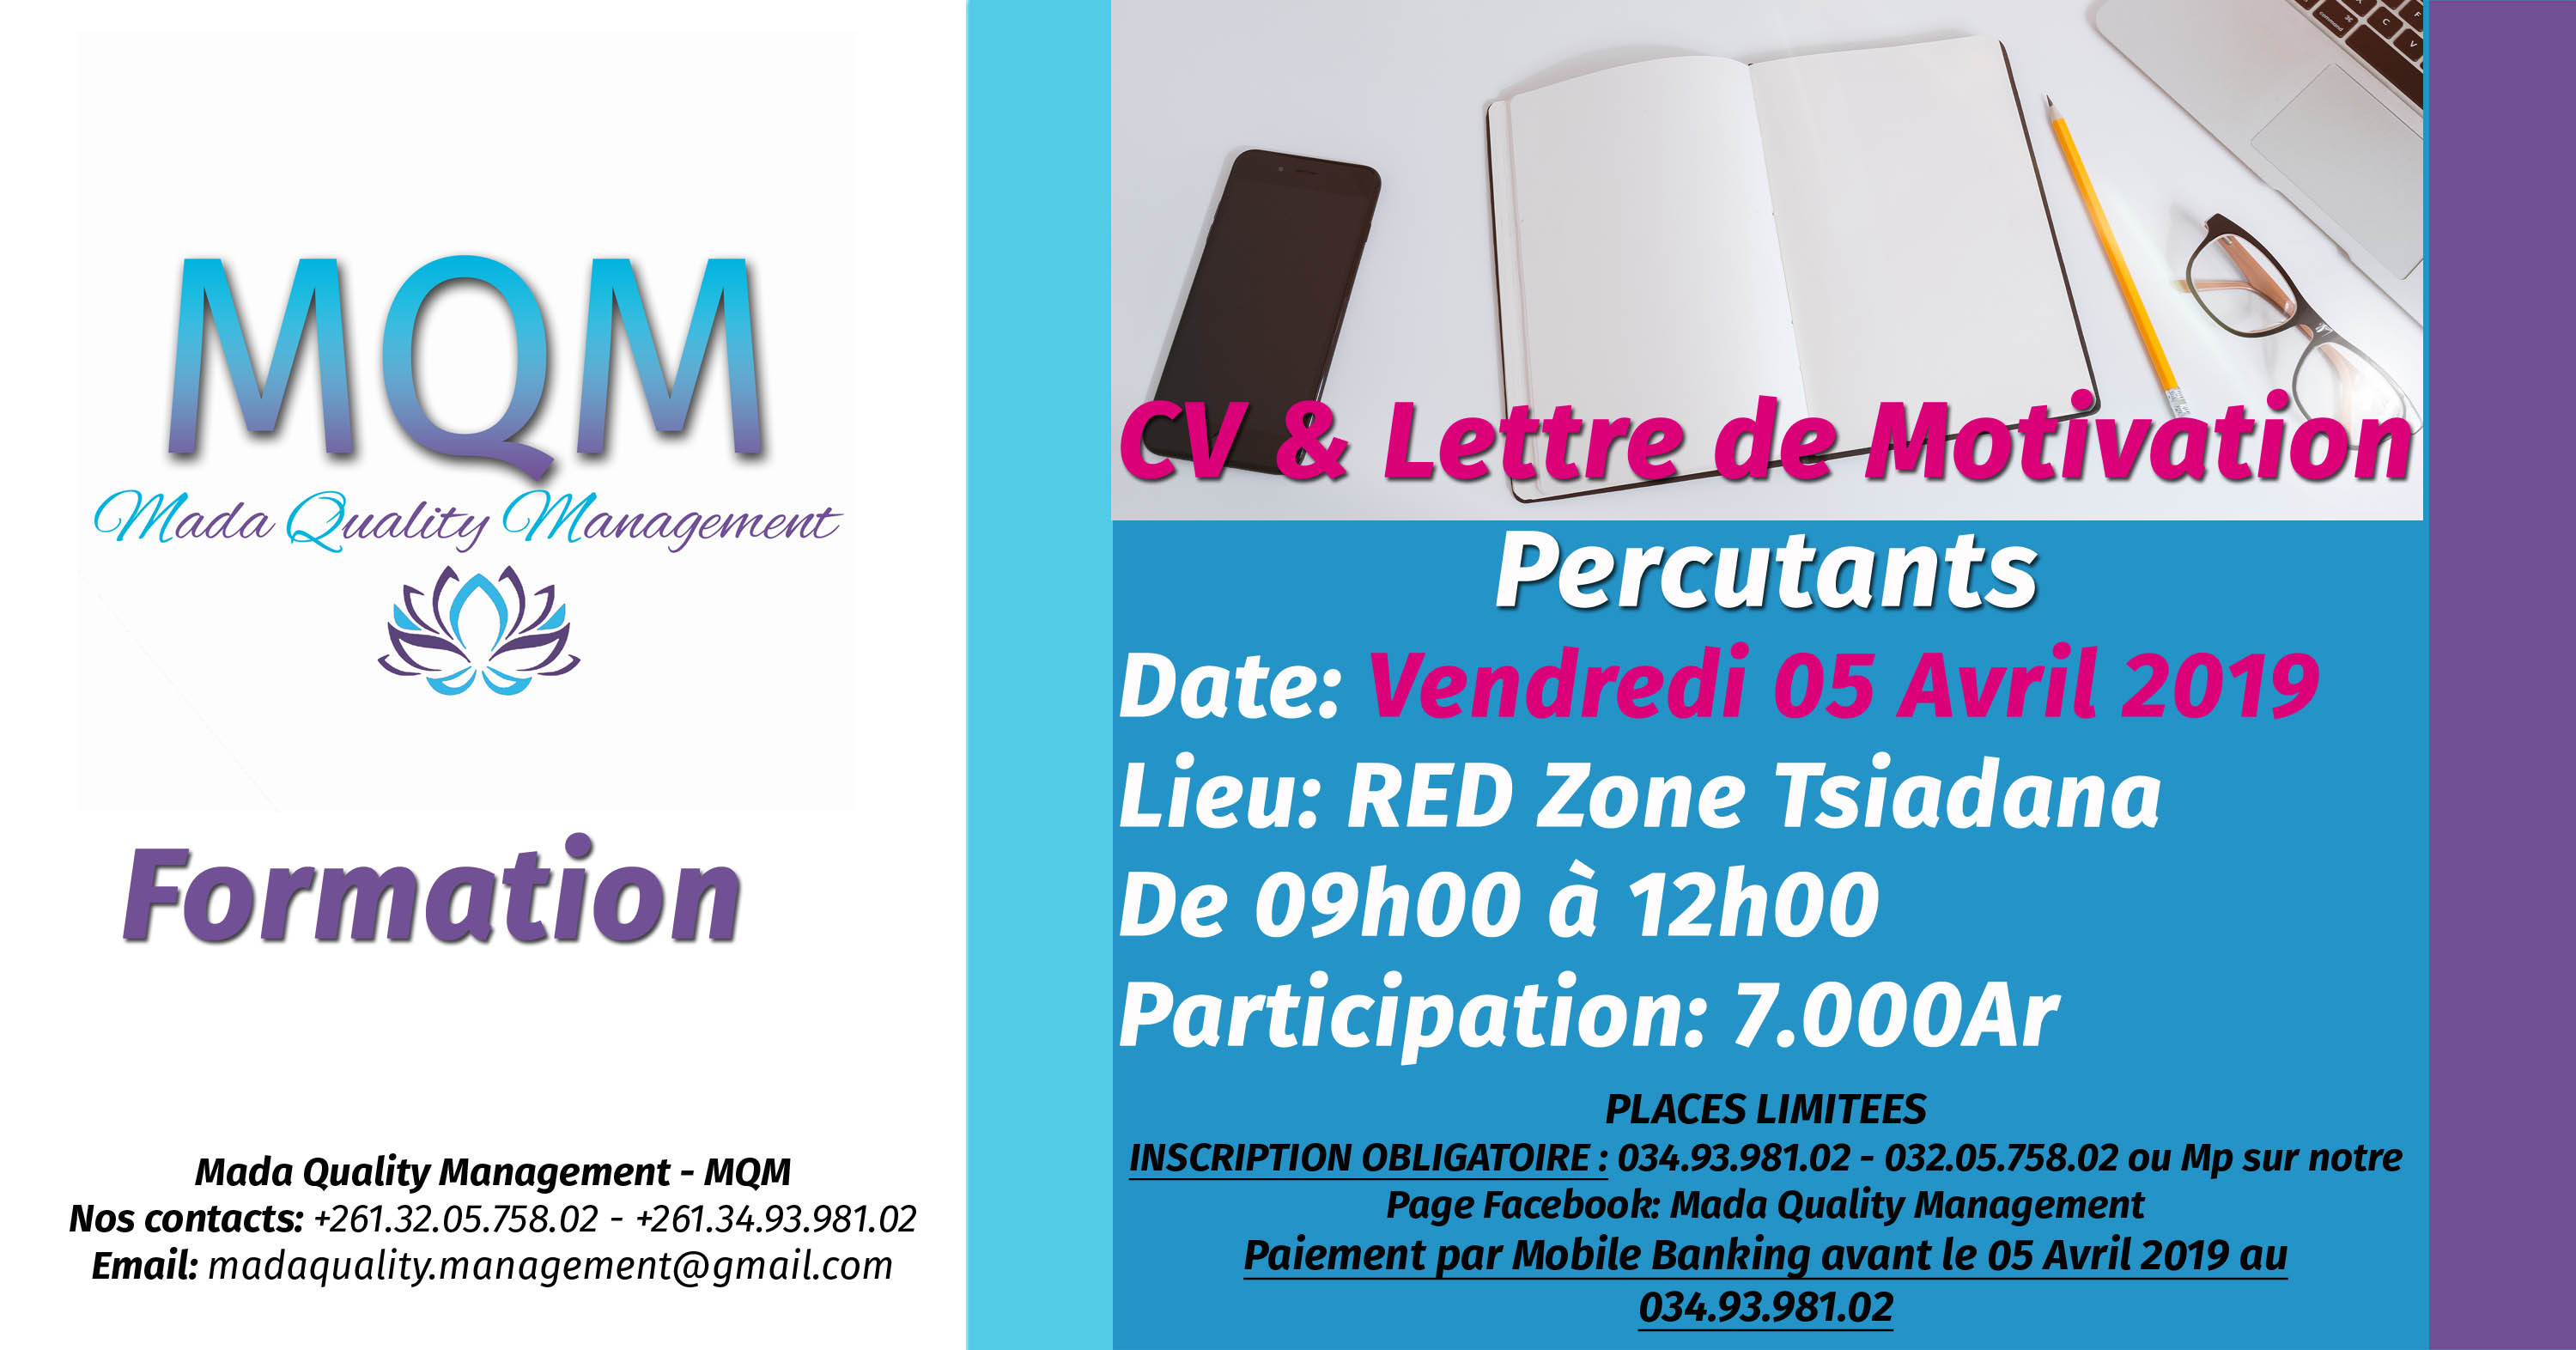 cv et lettre de motivation percutants